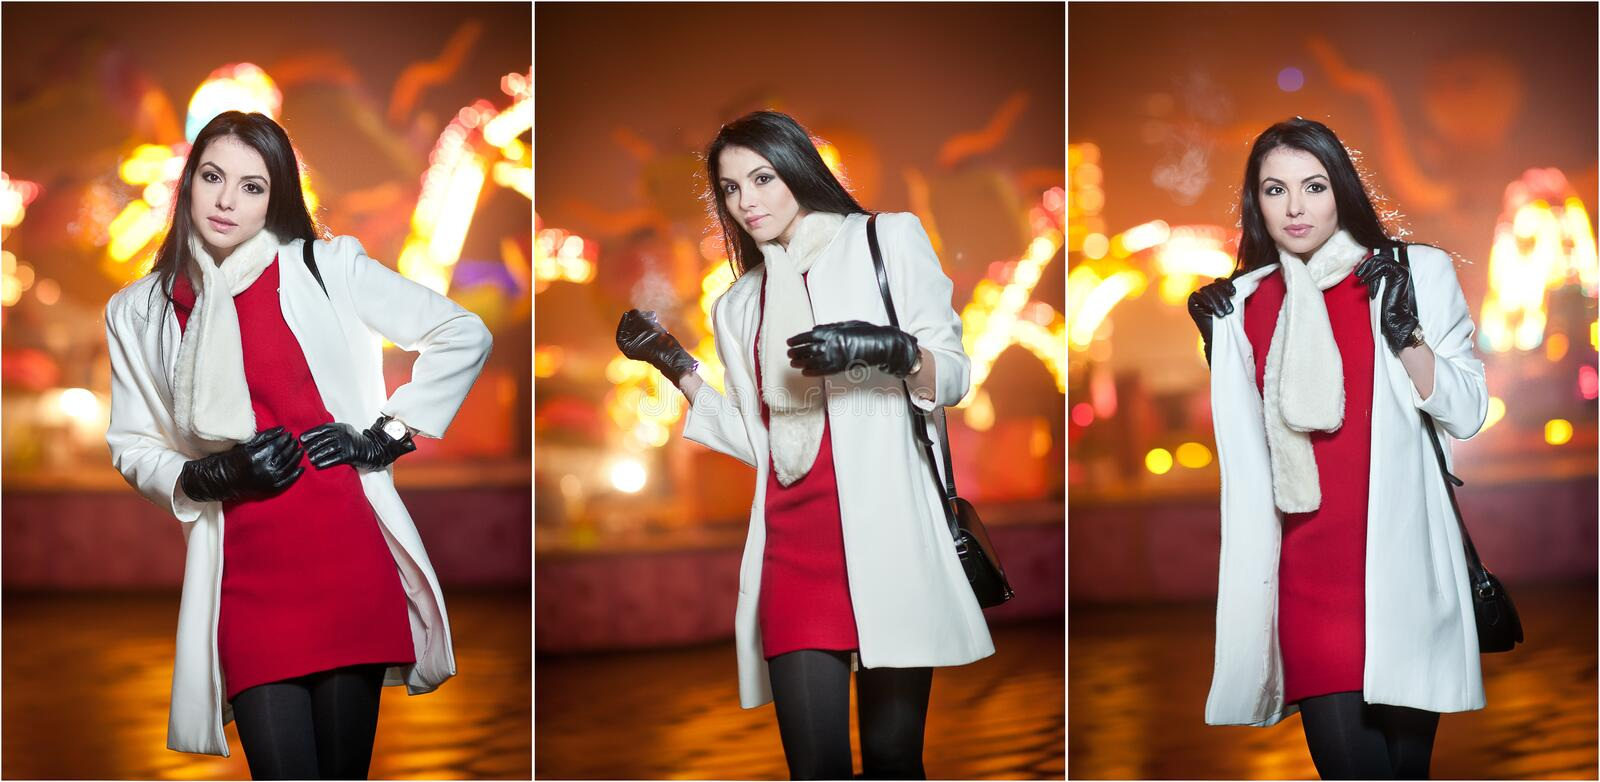 Fashionable lady wearing red dress and white coat outdoor in urban scenery with city lights in background. Full length portrait. Of young beautiful elegant stock photography